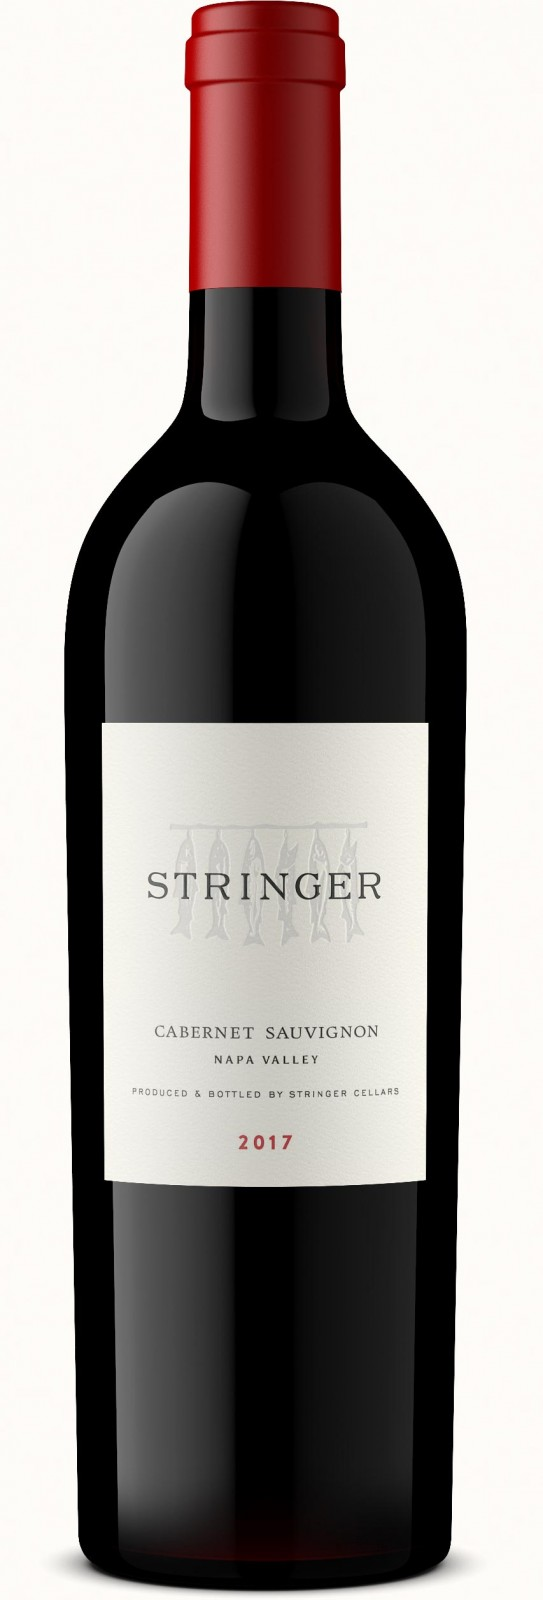 Napa Valley Cabernet Sauvignon 2017 Napa Valley—CA - Stringer Cellars